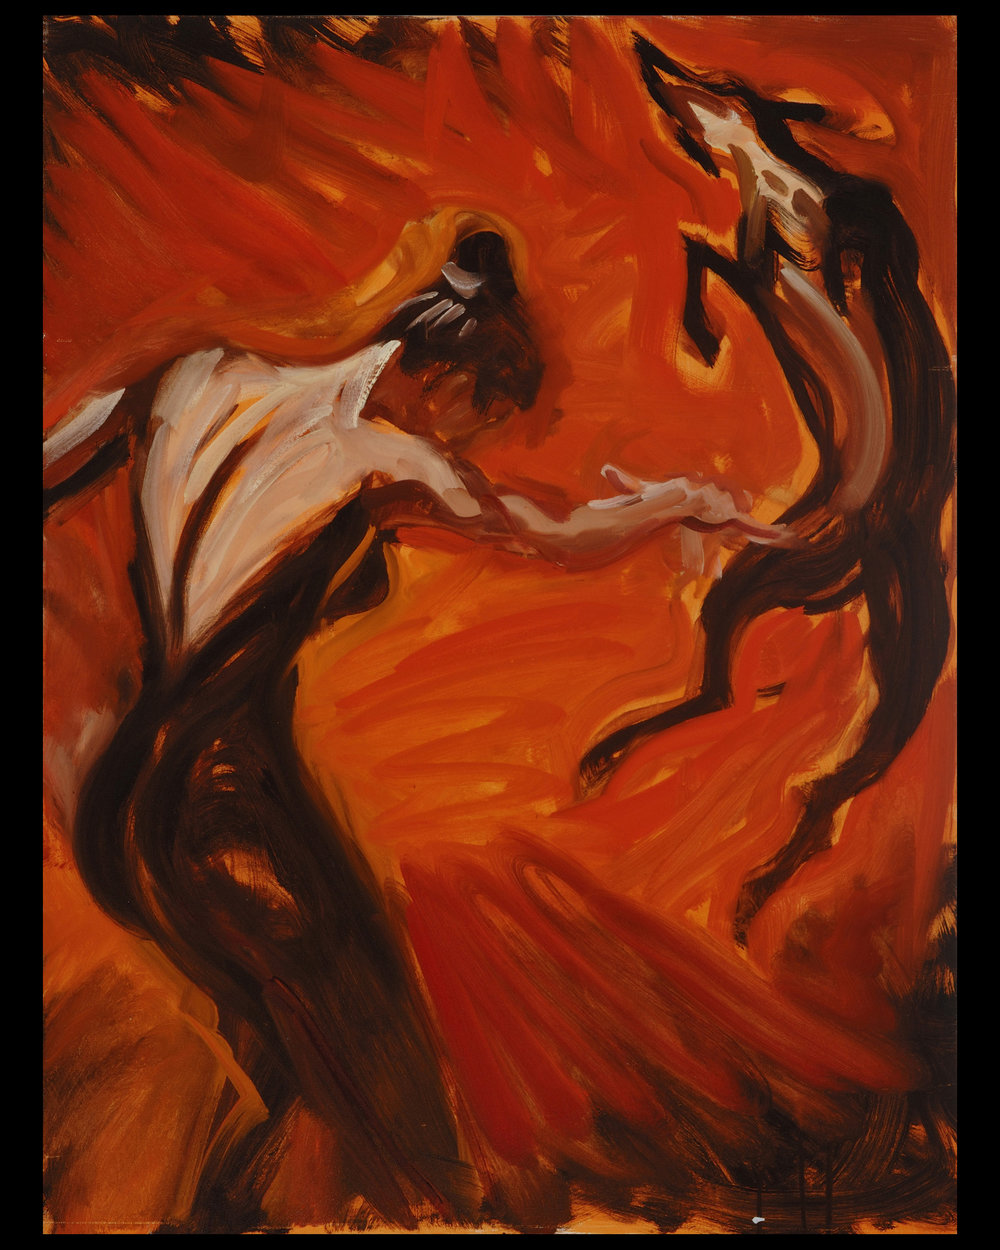 Dancing with the Dog  40 x 30 inches, oil on canvas